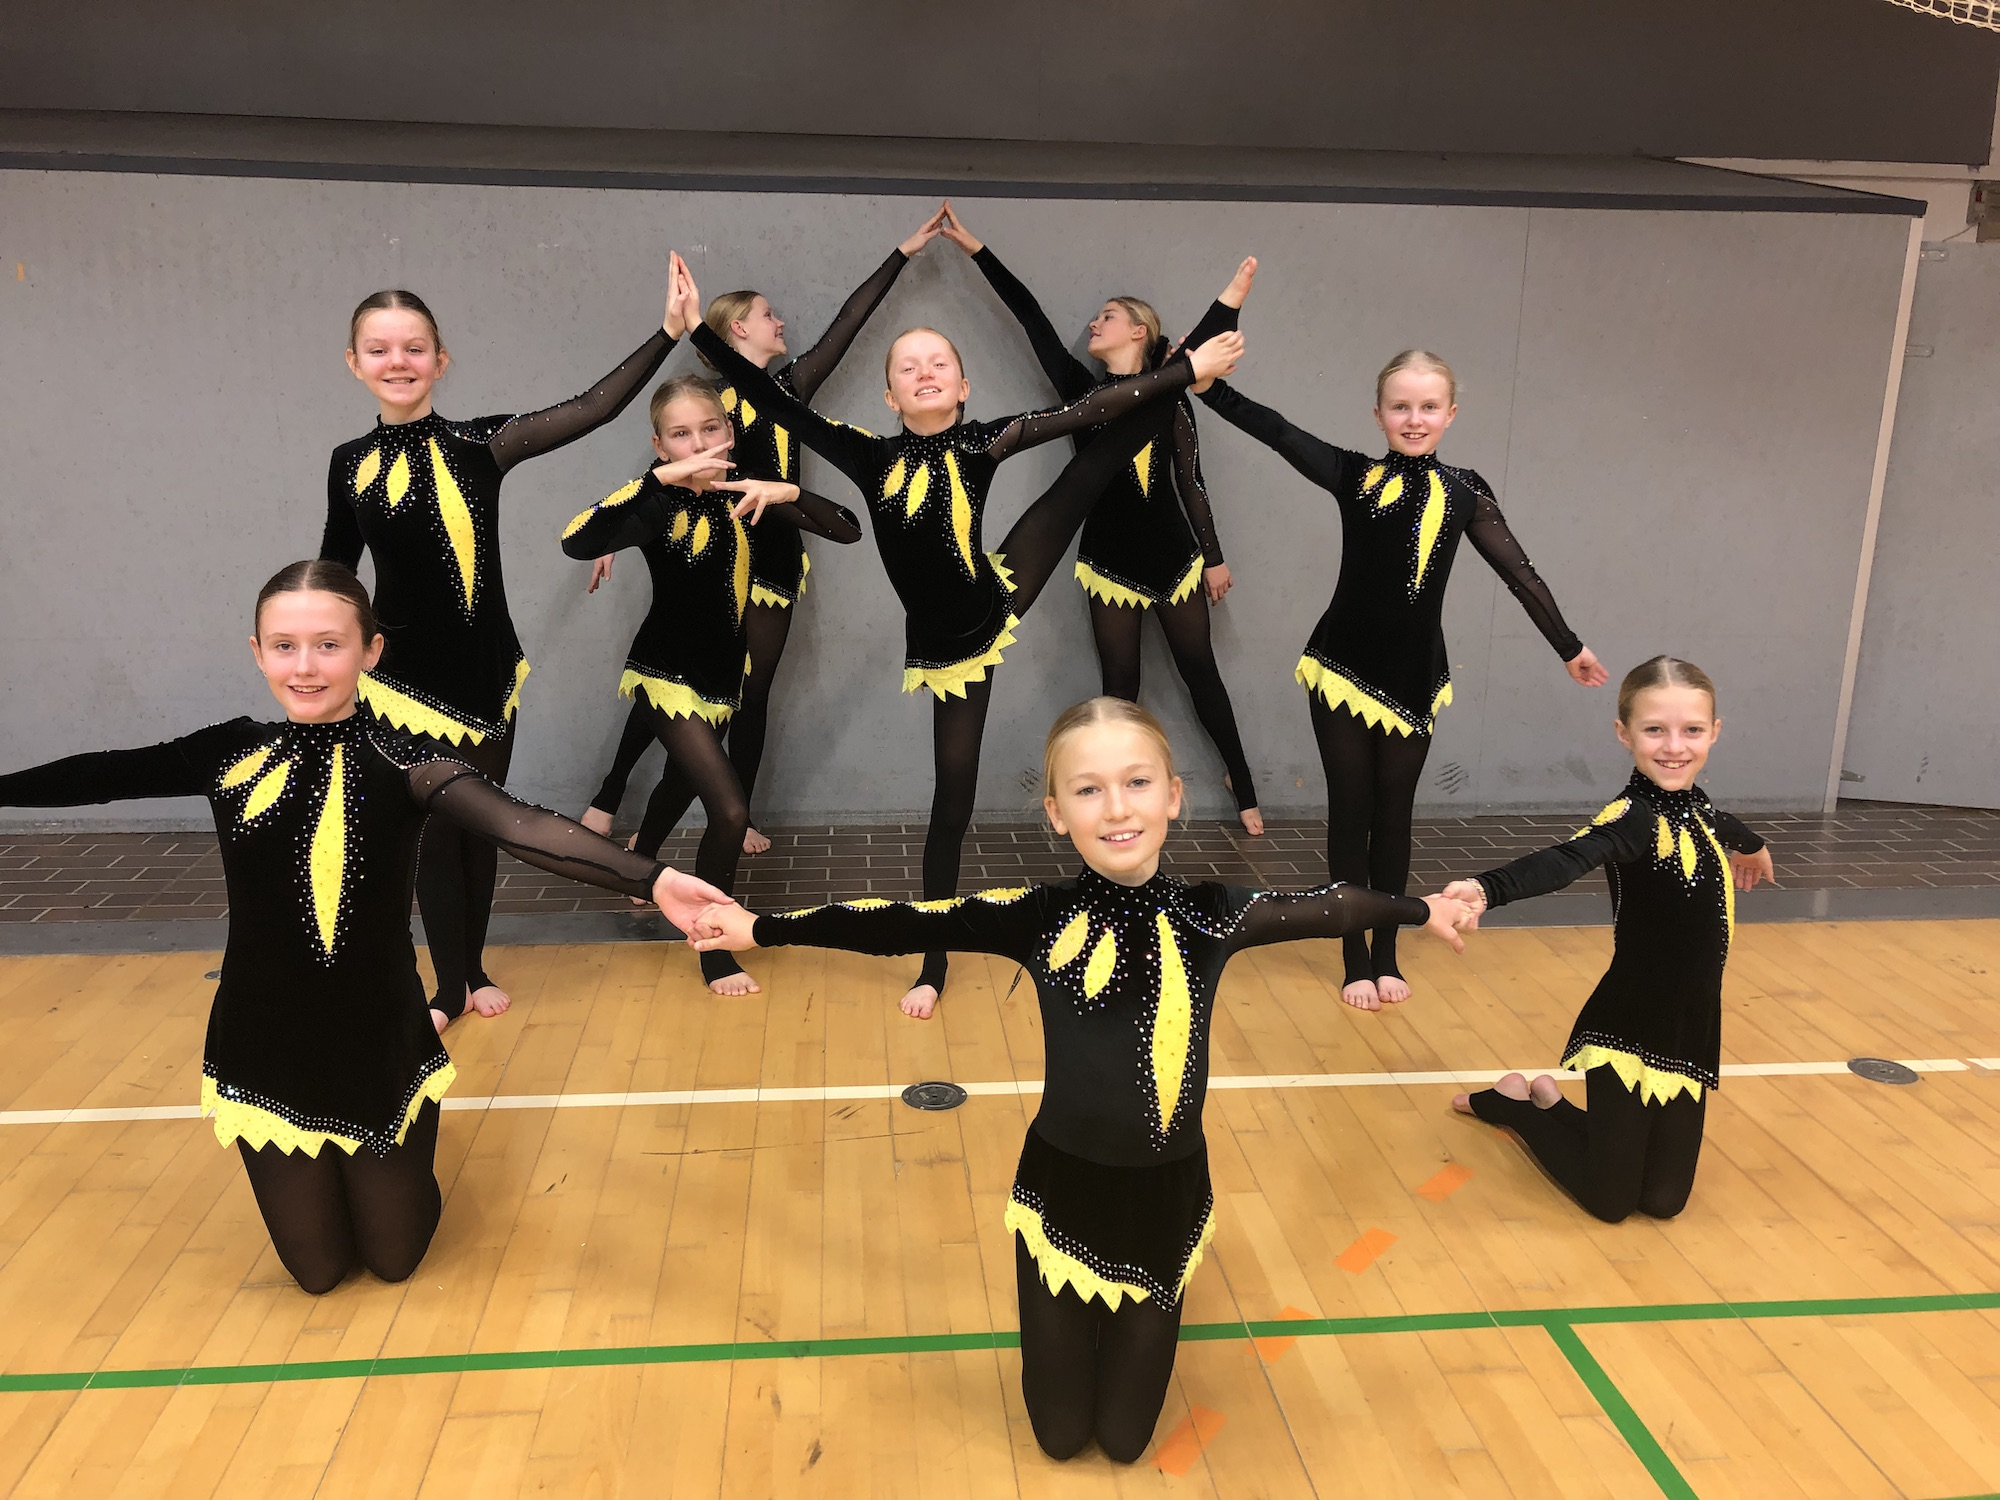 Rhythmic Gymnastics Leotards for Sofie's team from Denmark